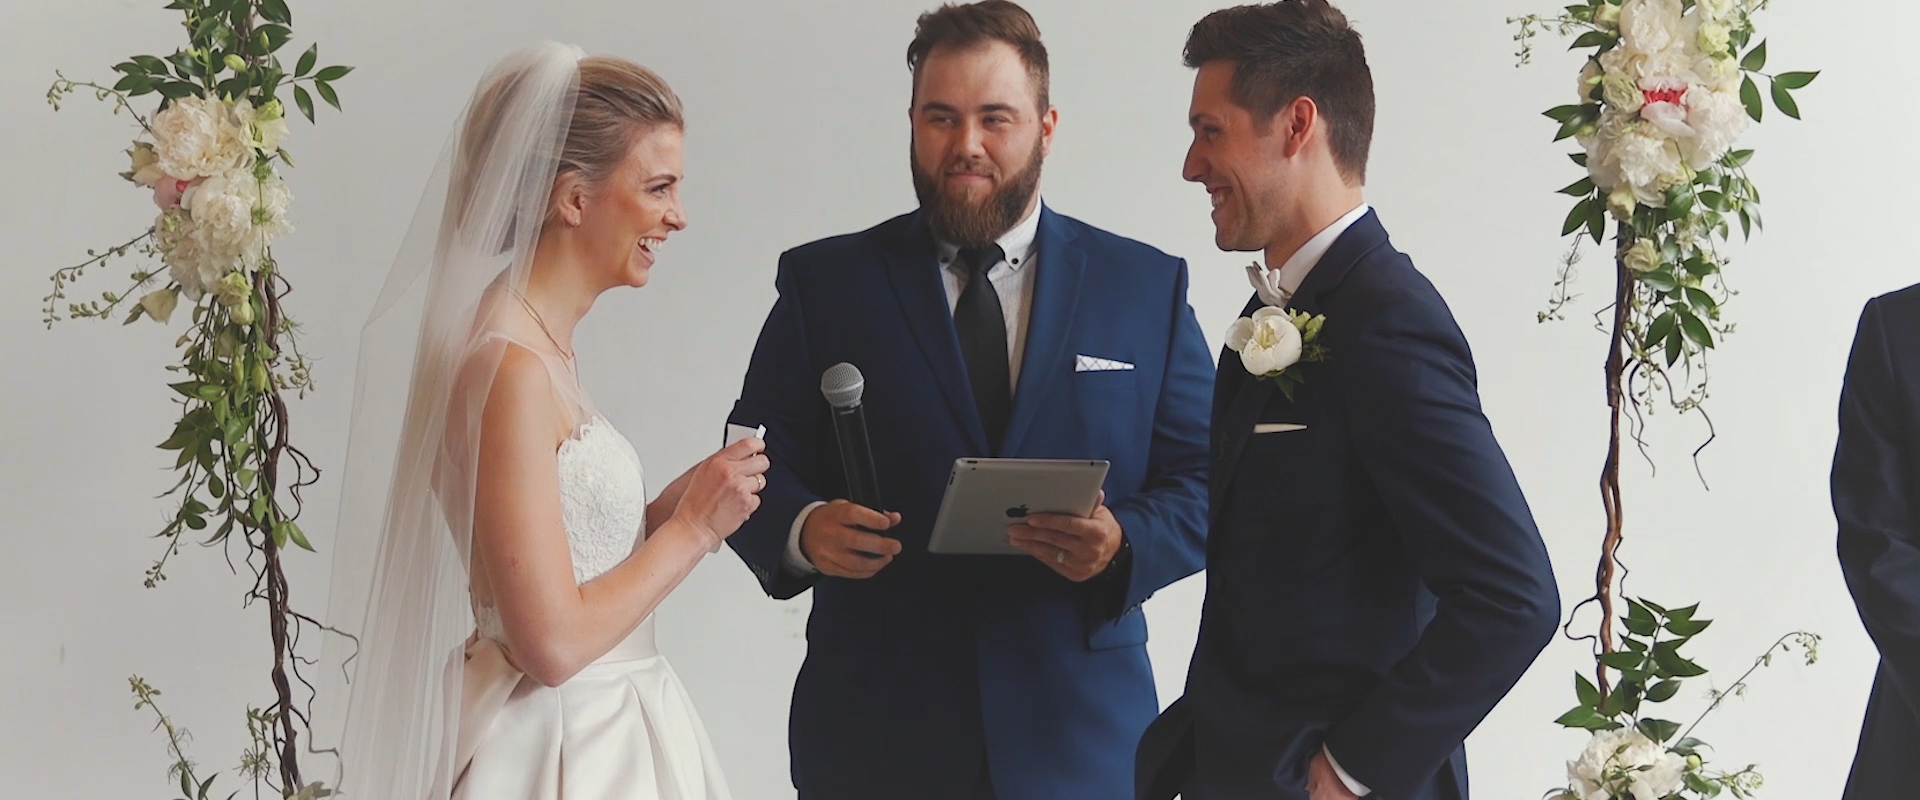 An image of a bride reciting her vows at her wedding ceremony; Toronto Wedding Video blog